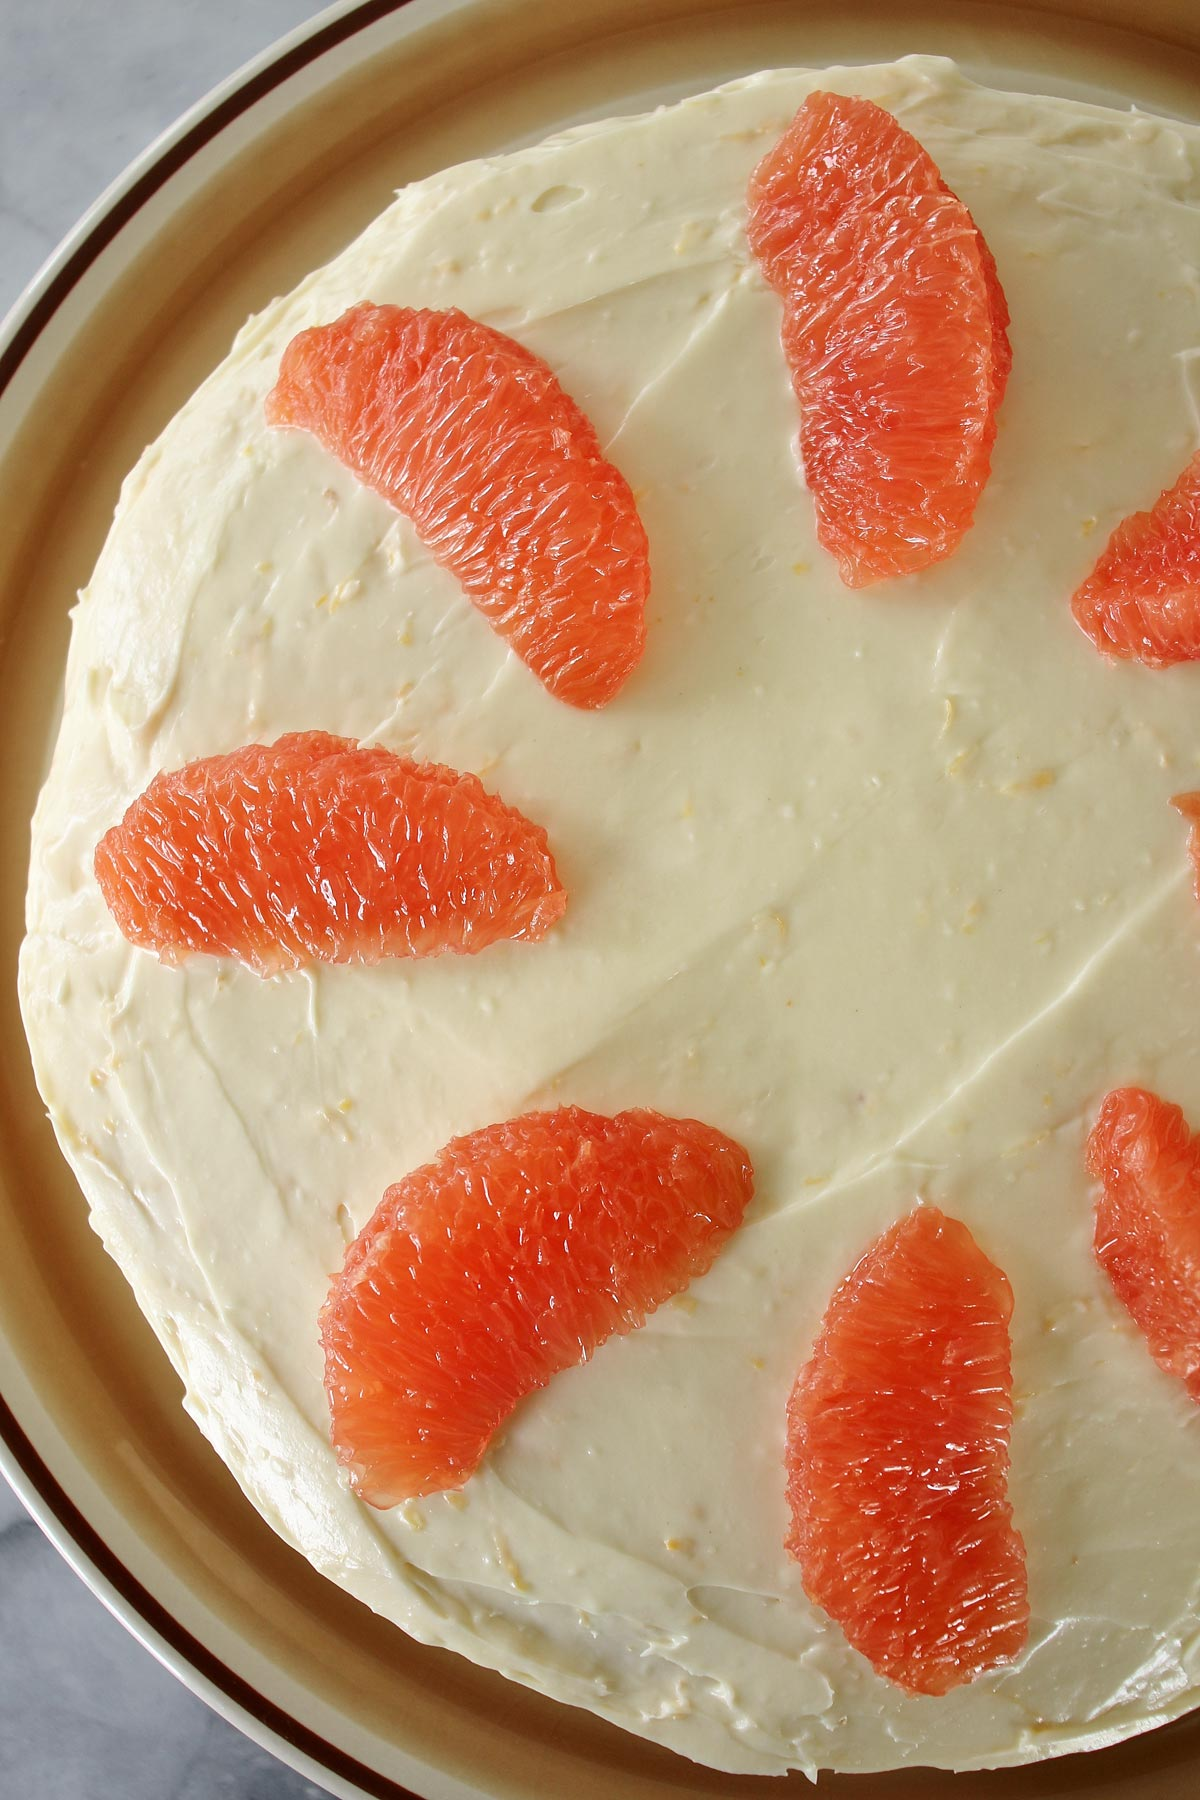 Overhead view of retro Brown Derby Grapefruit cake, with grapefruit segments decorating the top